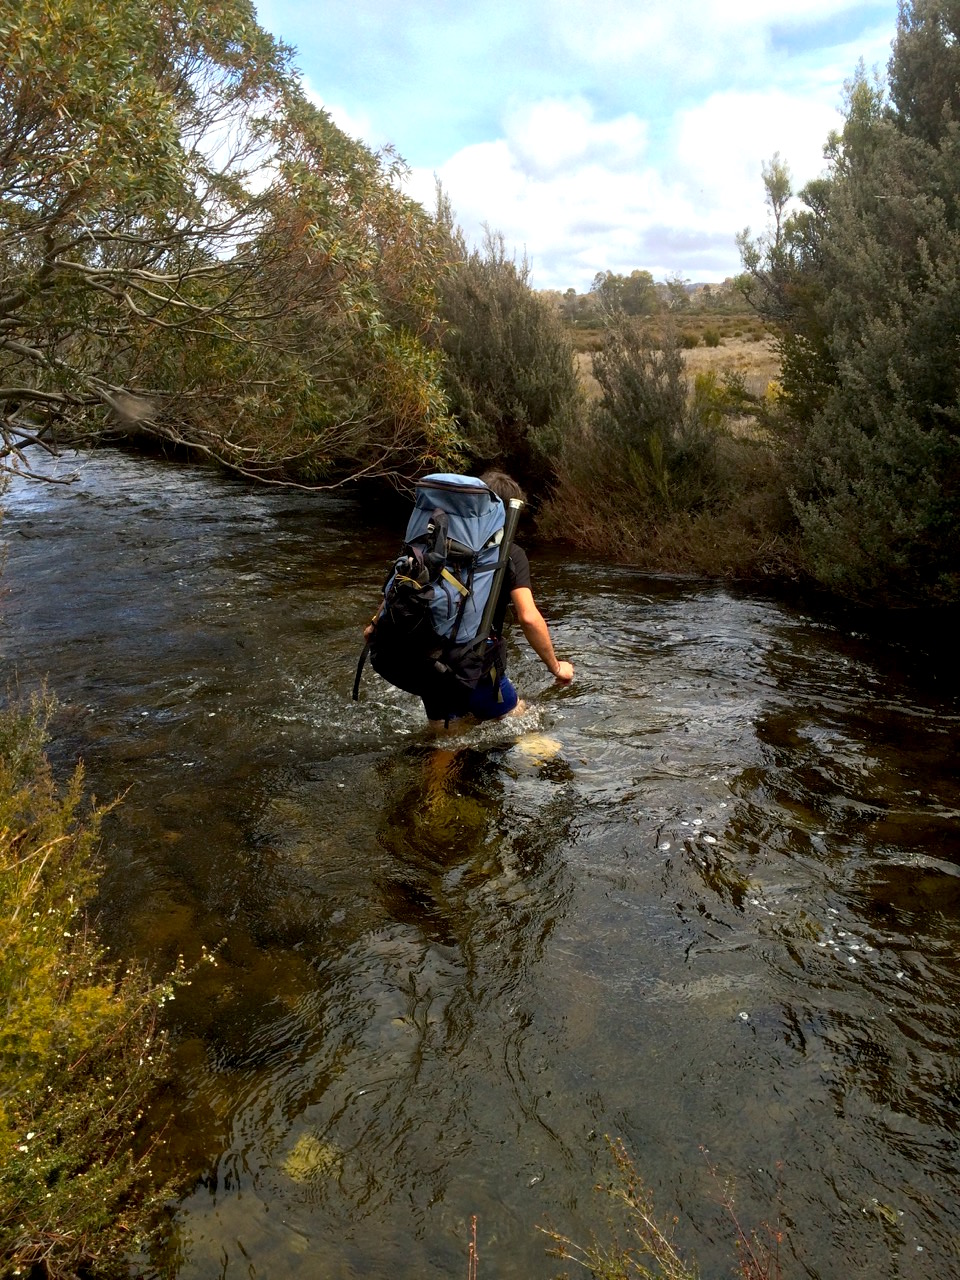 Lots of early rain meant cold water crossings